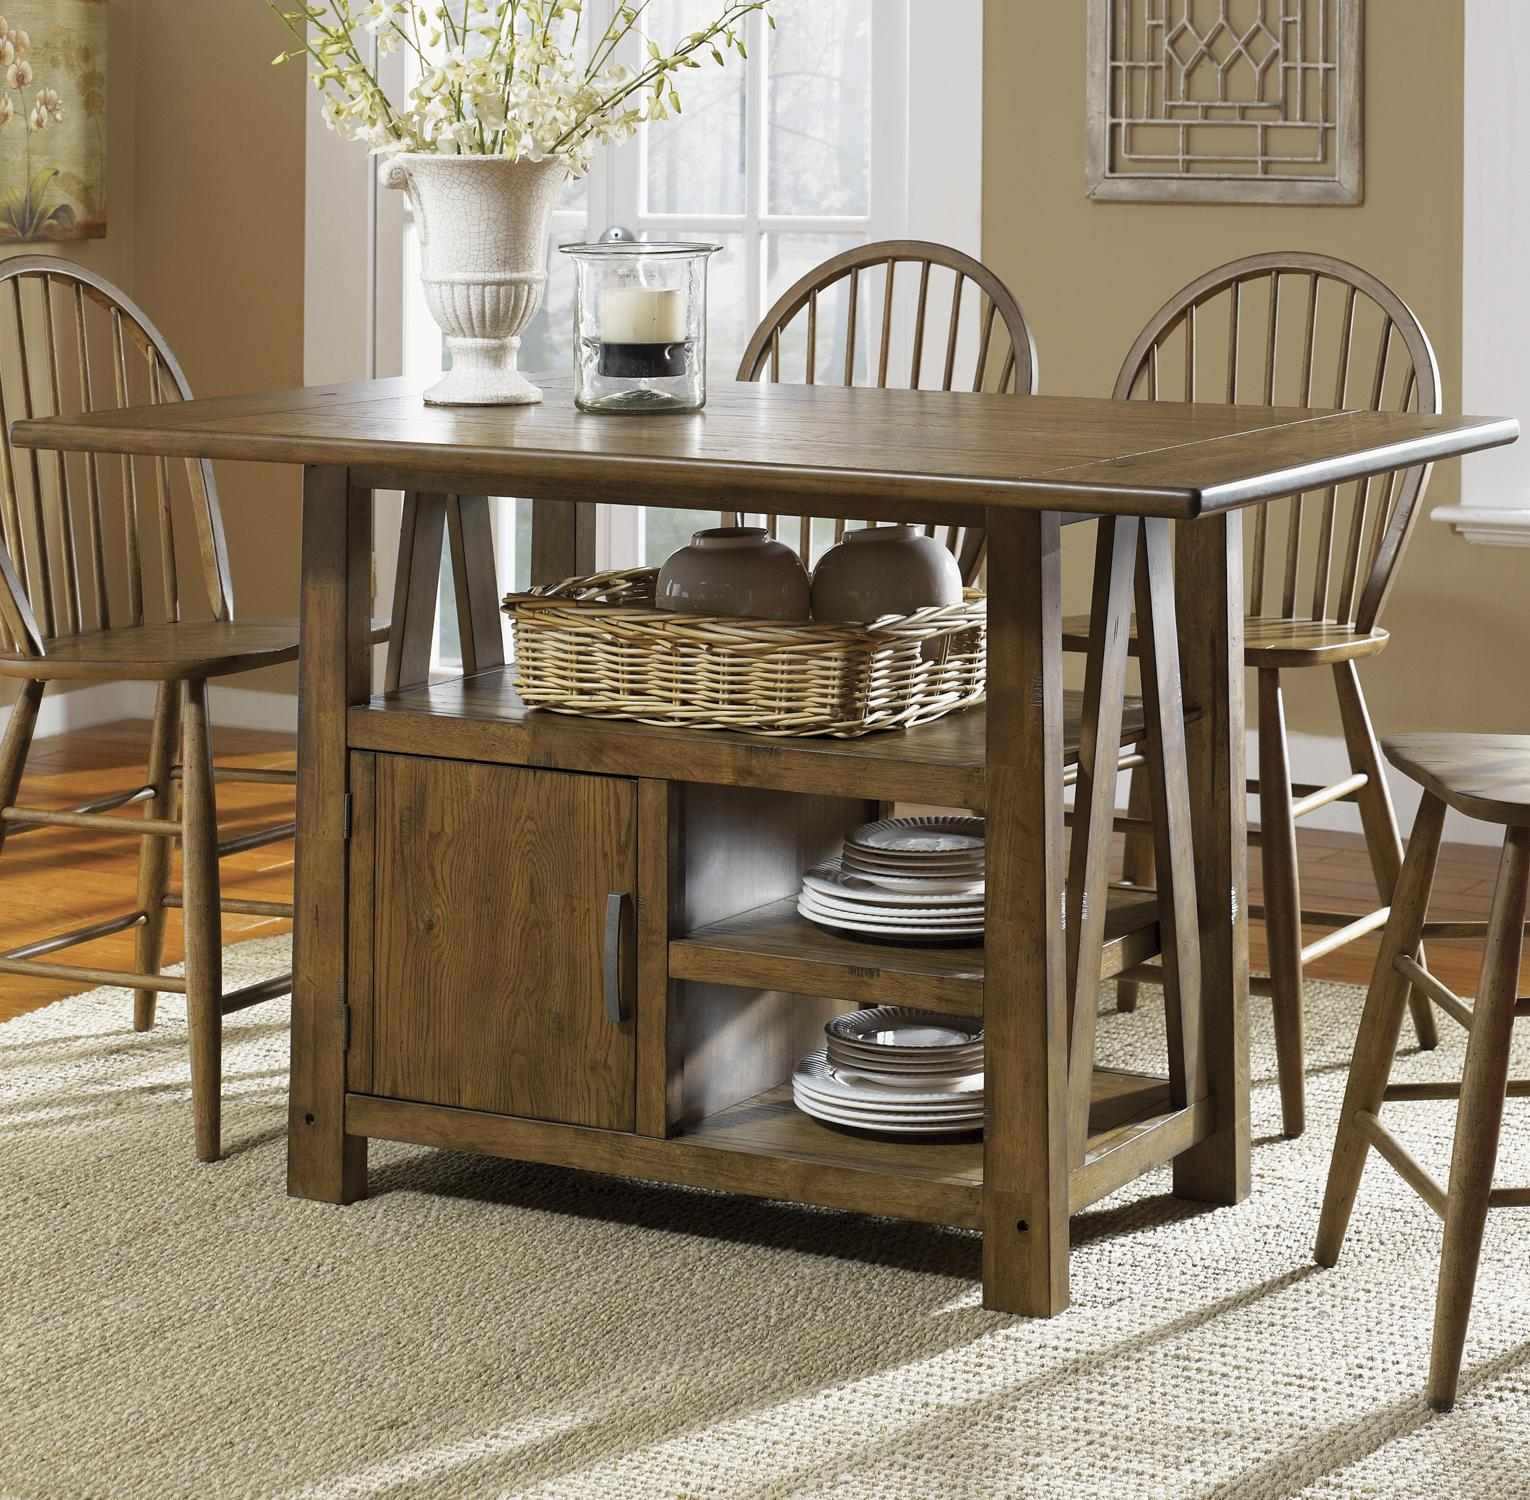 Liberty Furniture Farmhouse  Center Island Table - Item Number: 139-GT3660